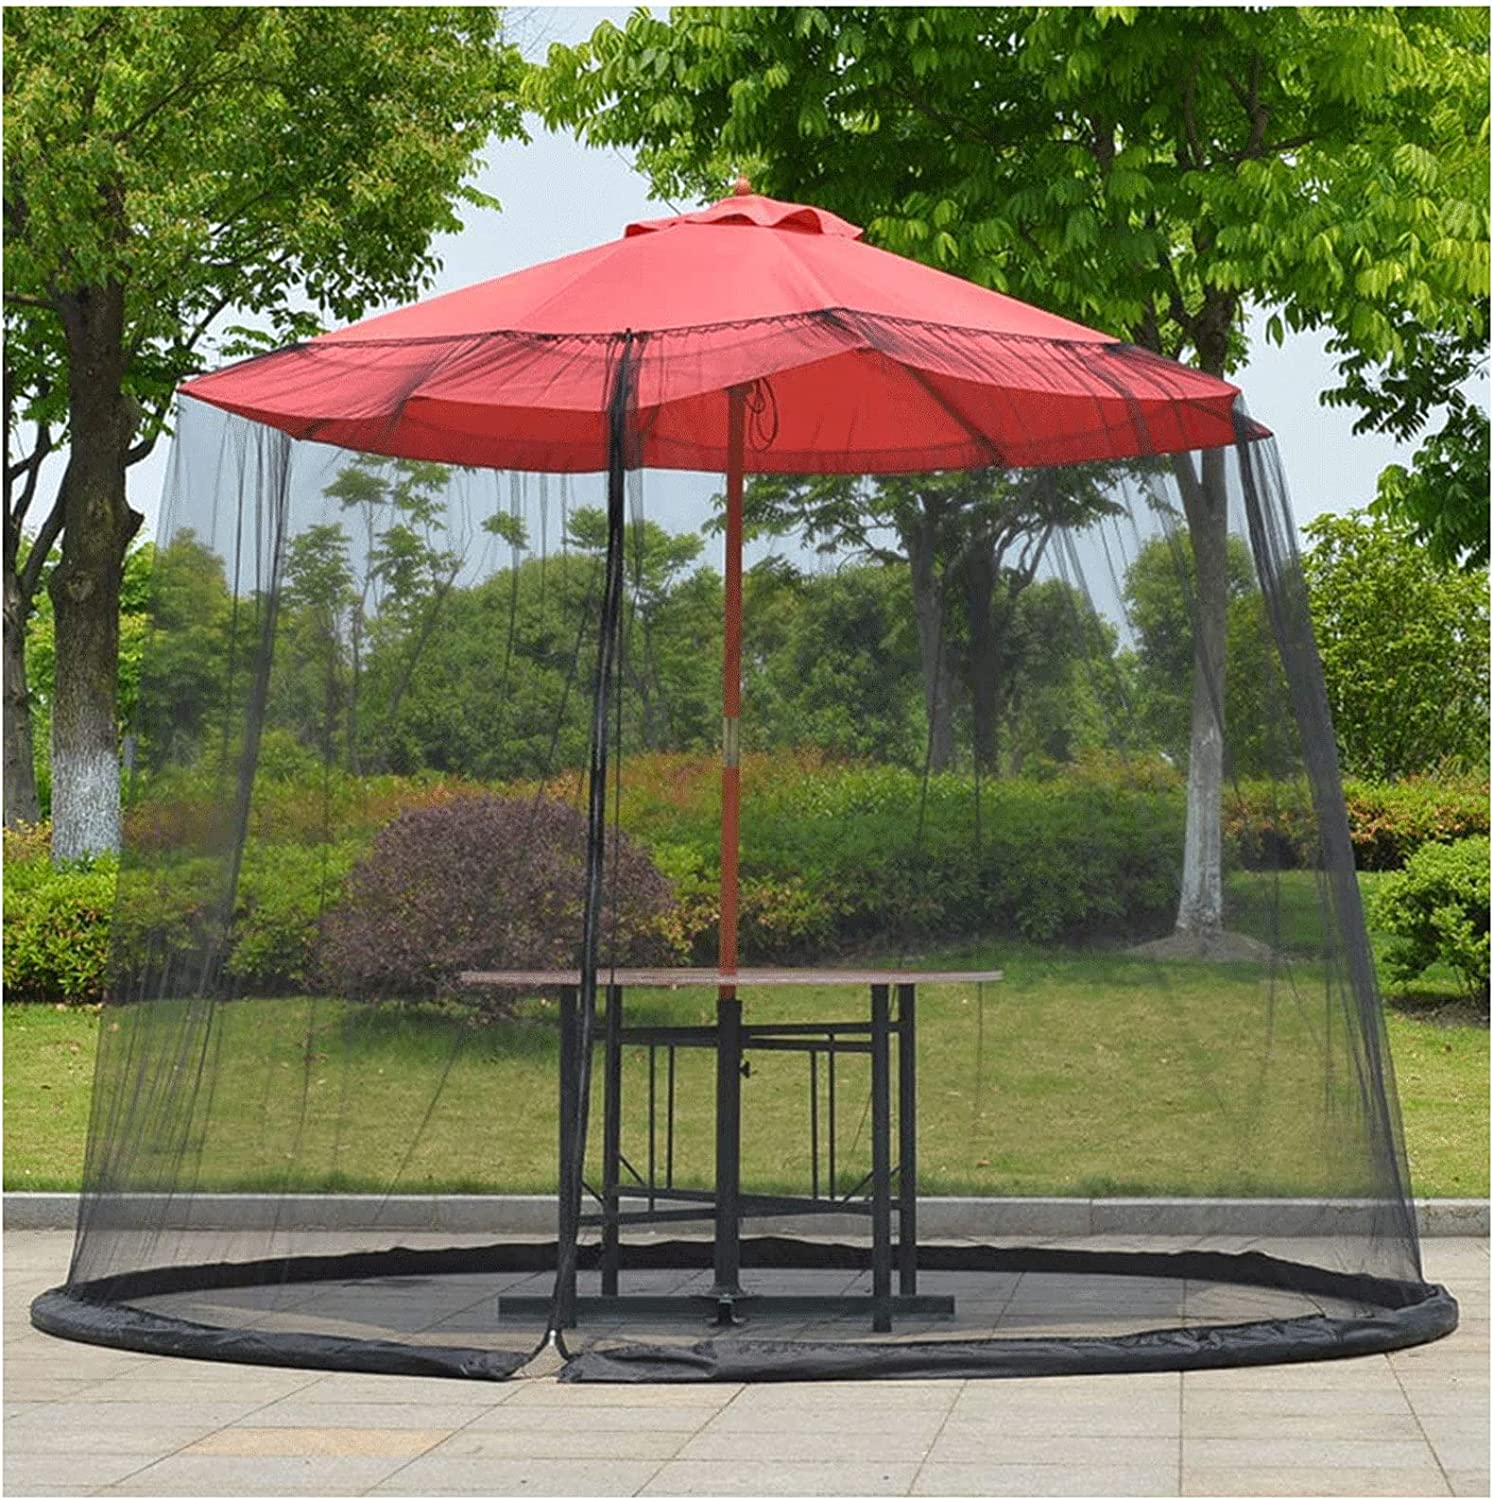 Umbrella Mosquito Challenge the lowest price of Japan Net for Umbrellas Canopy Outdoor famous